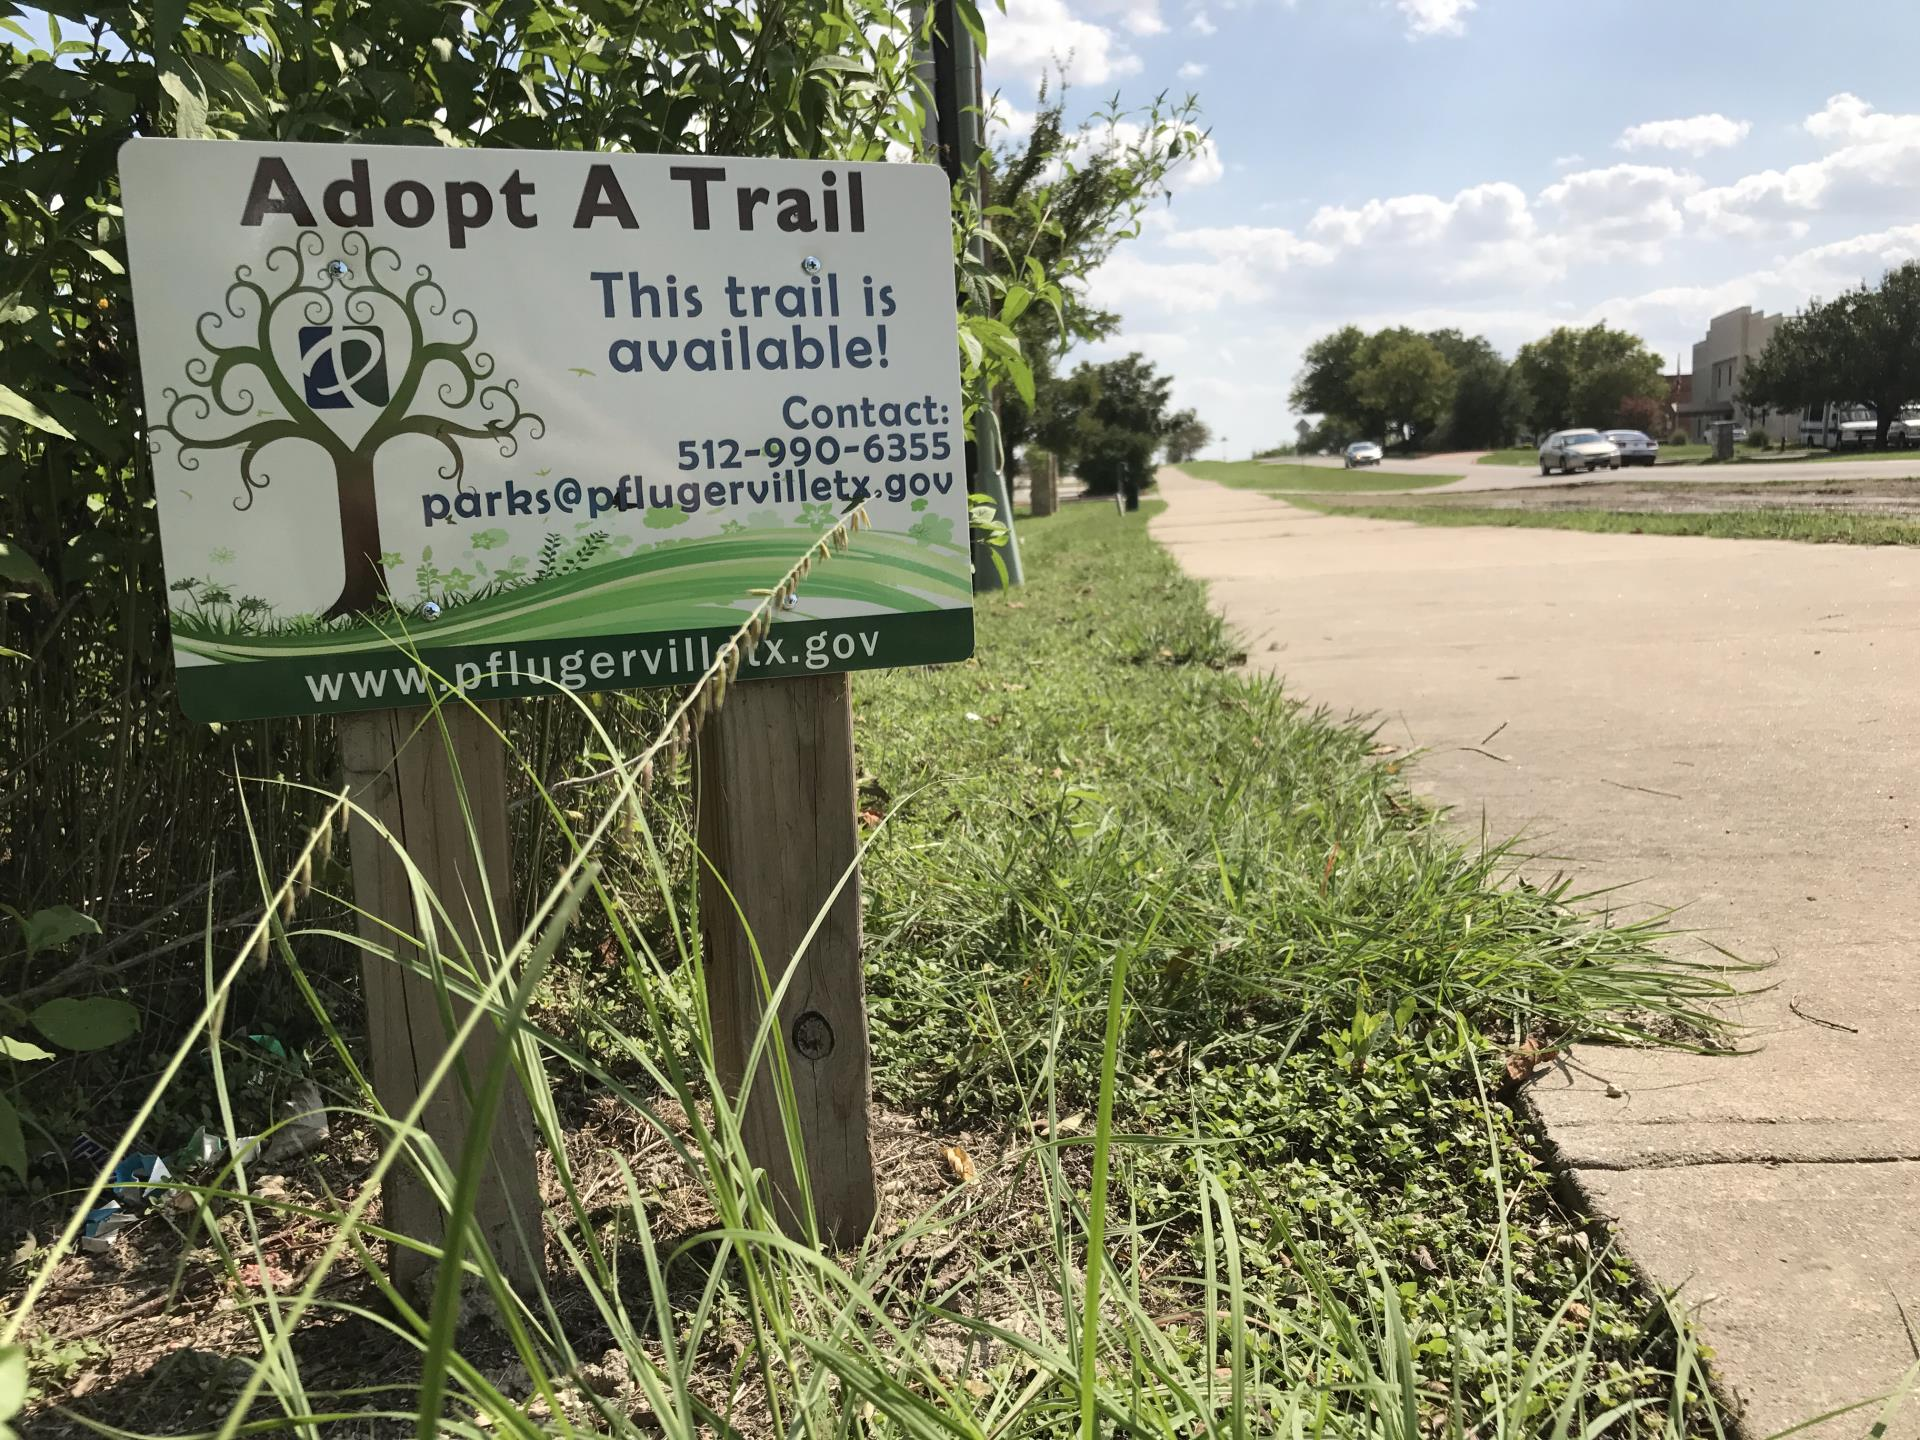 Adopt a trail sign 1